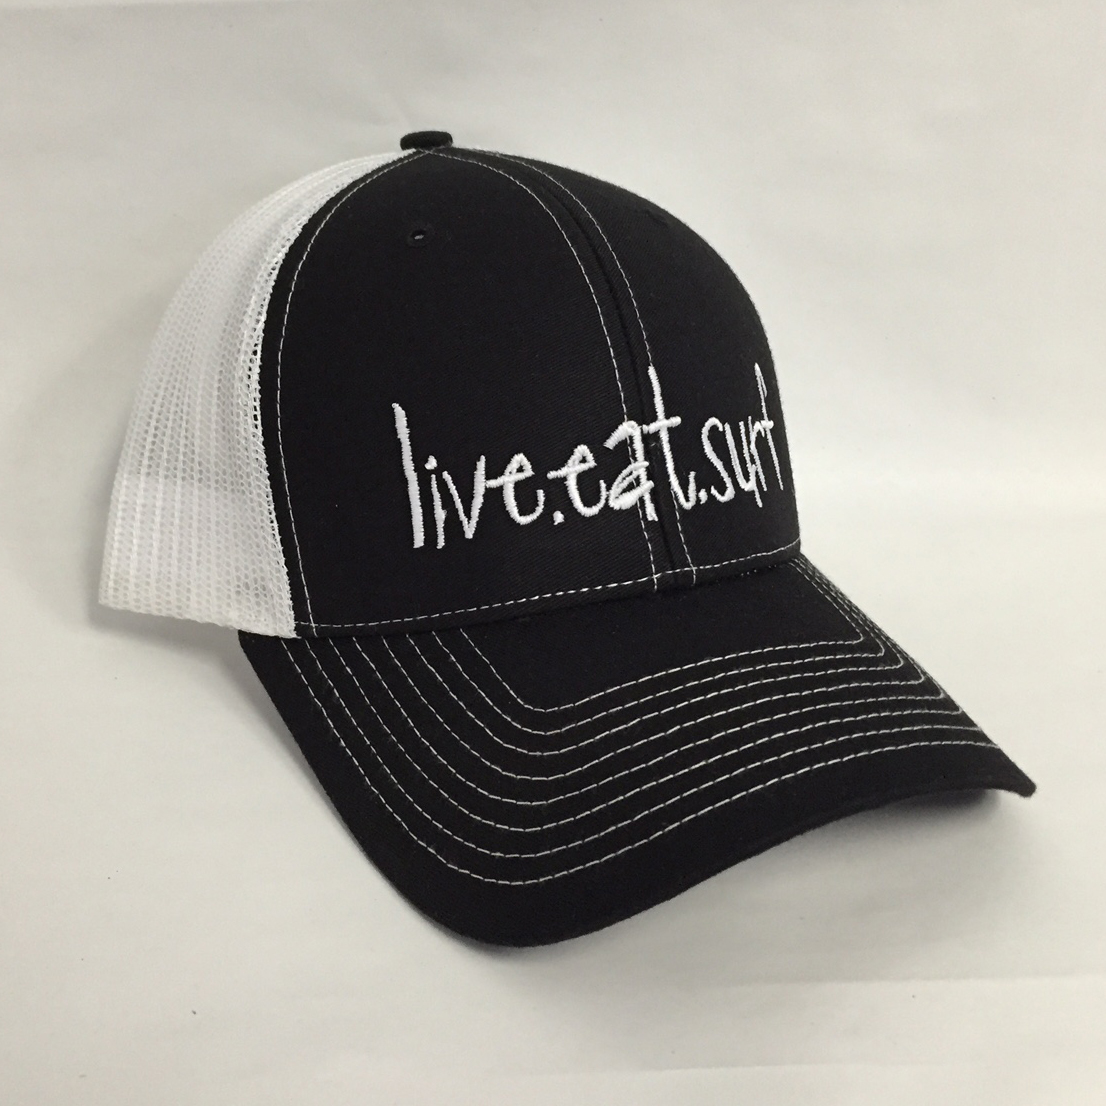 Live. Eat. Surf. Merchandise Hat